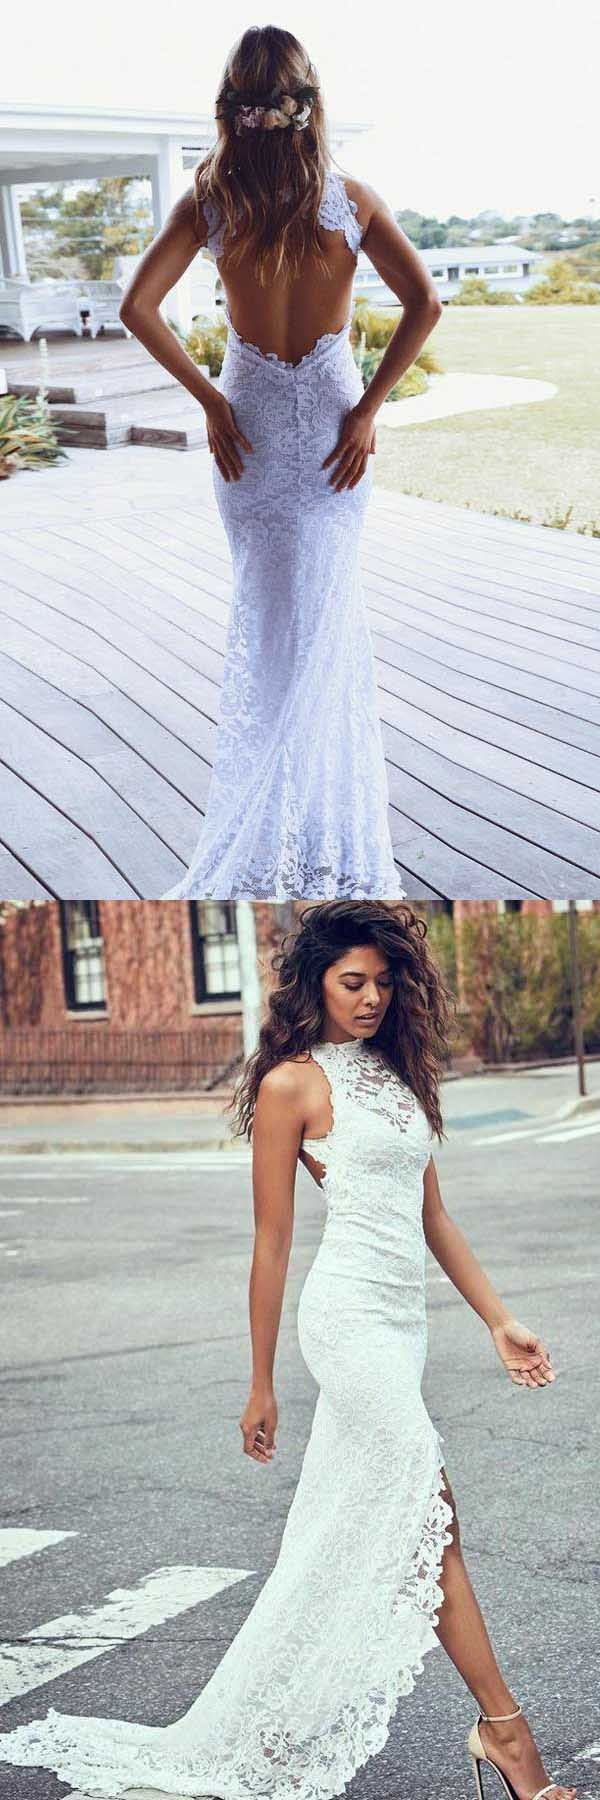 Red wedding dress meaning   best Wedding images on Pinterest  Homecoming dresses straps